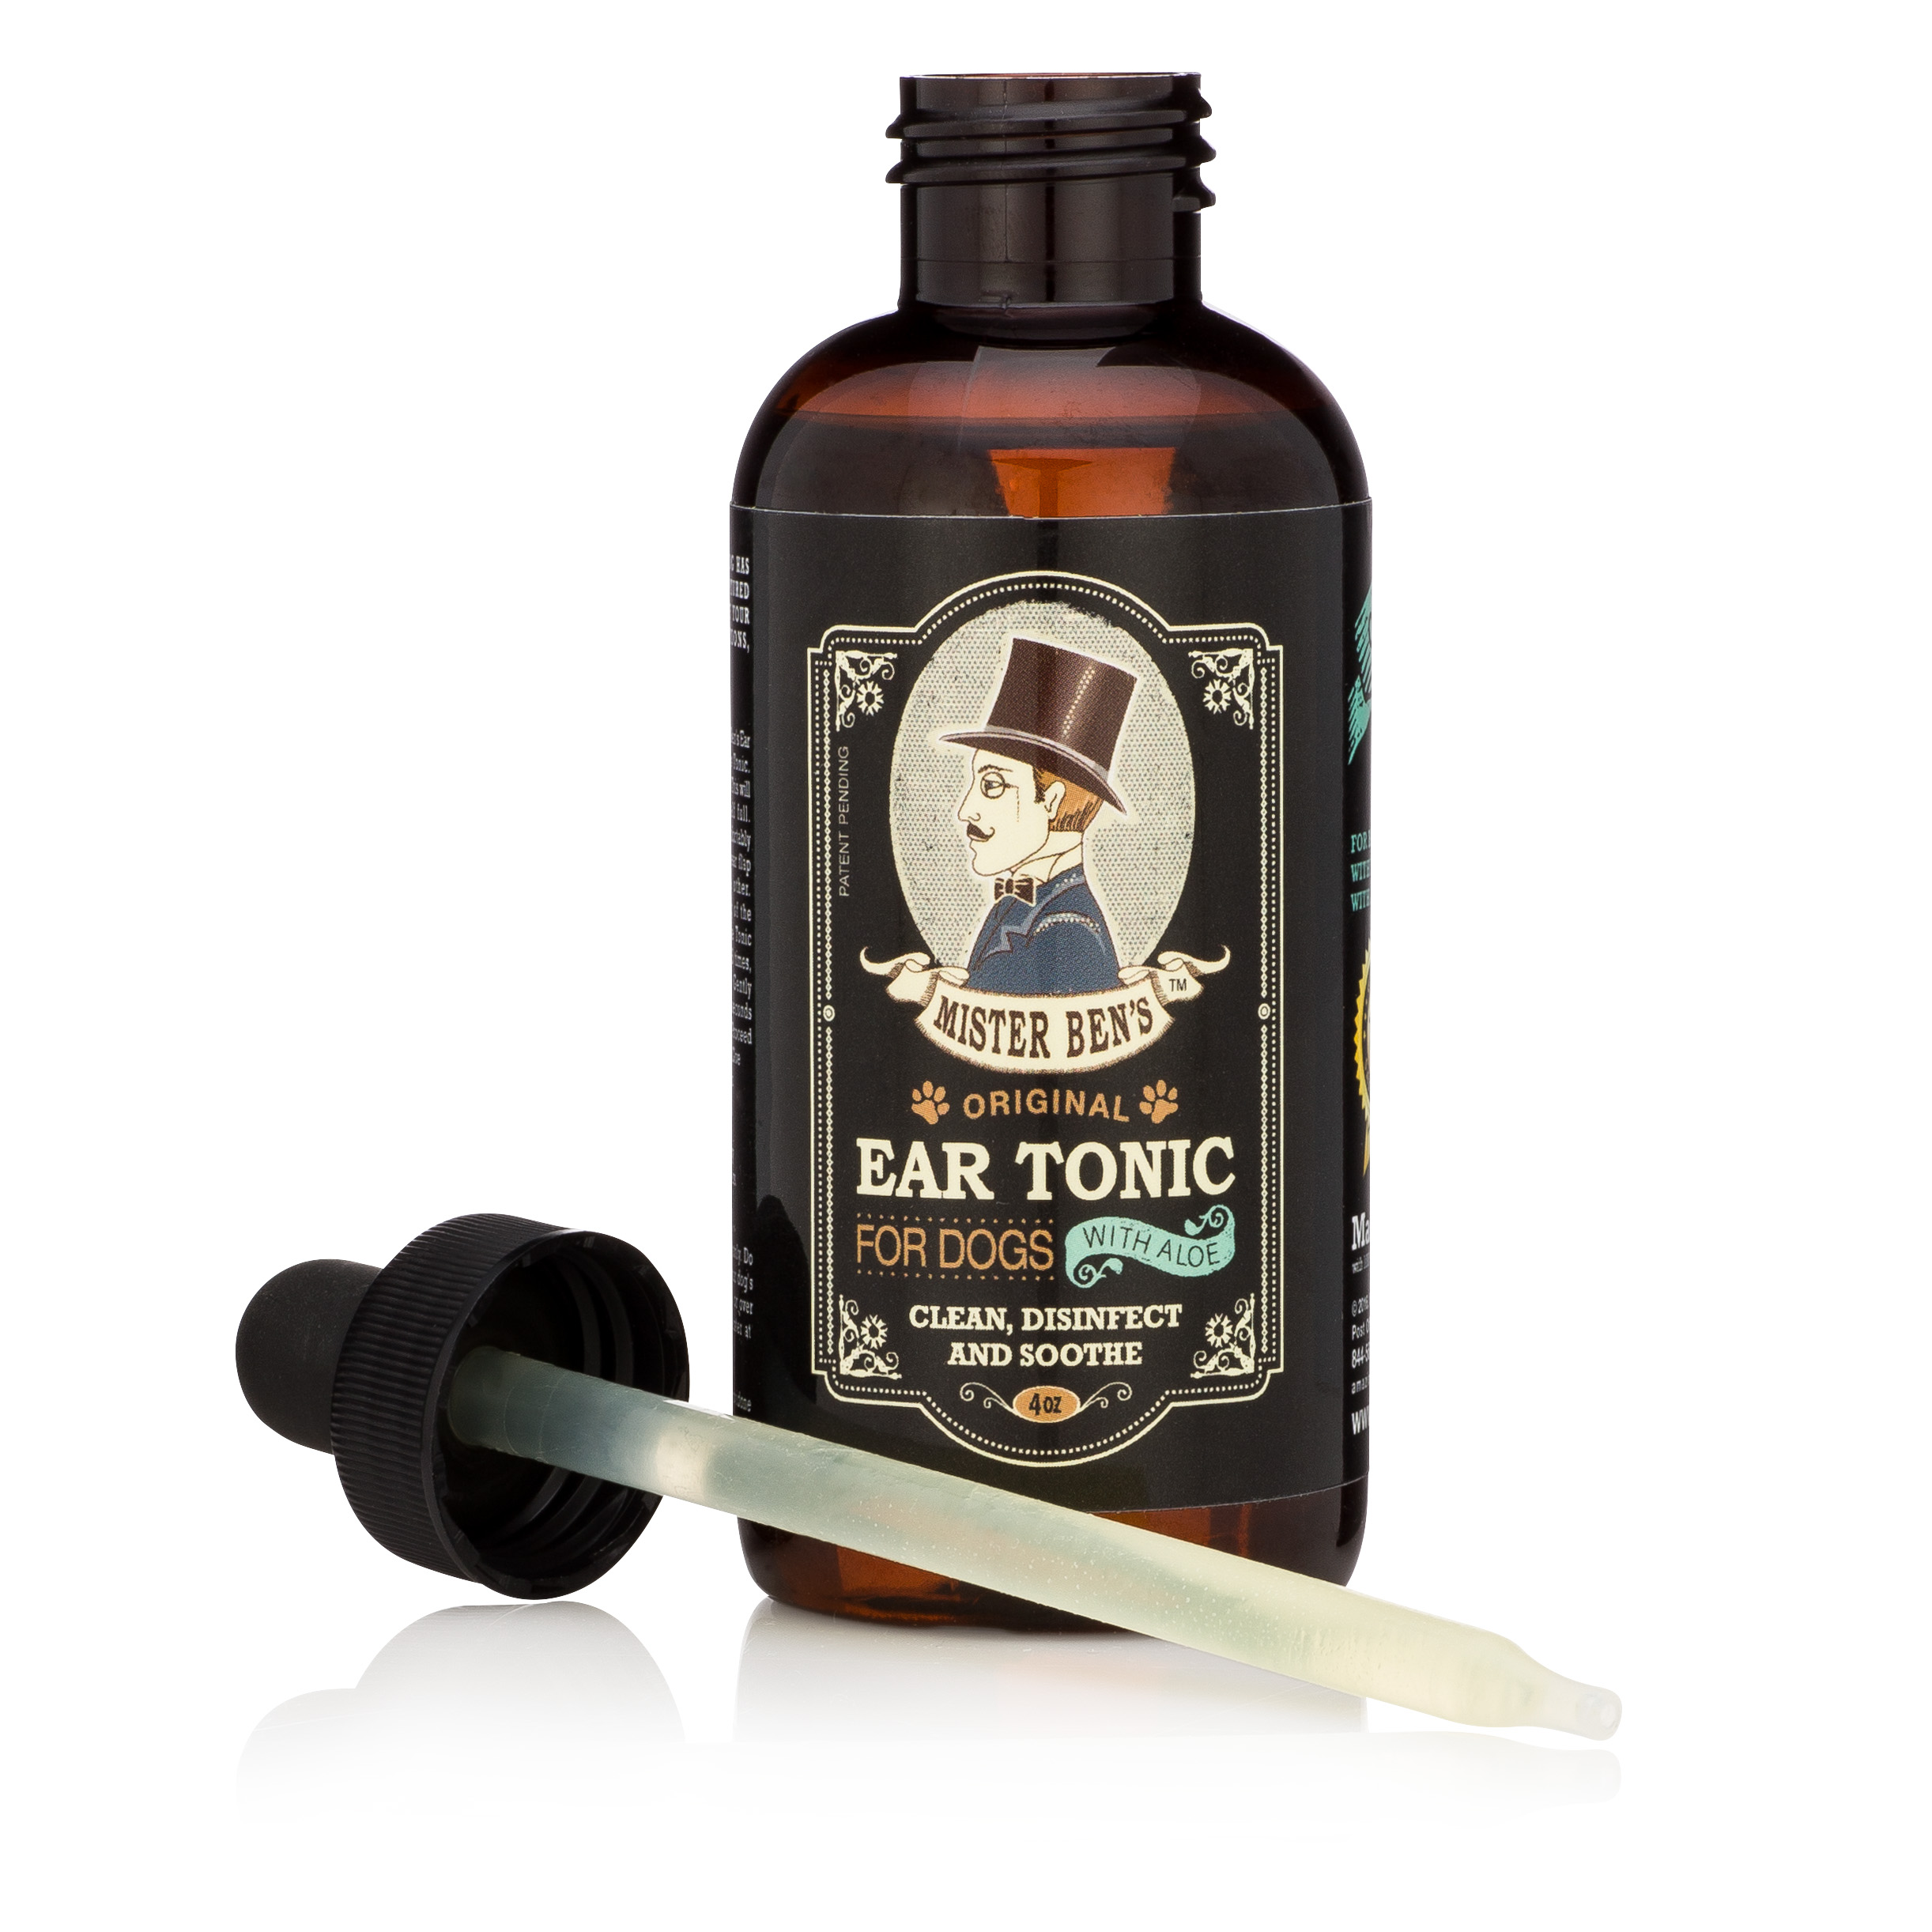 Mister Ben's Original Ear Tonic with Aloe for Dogs